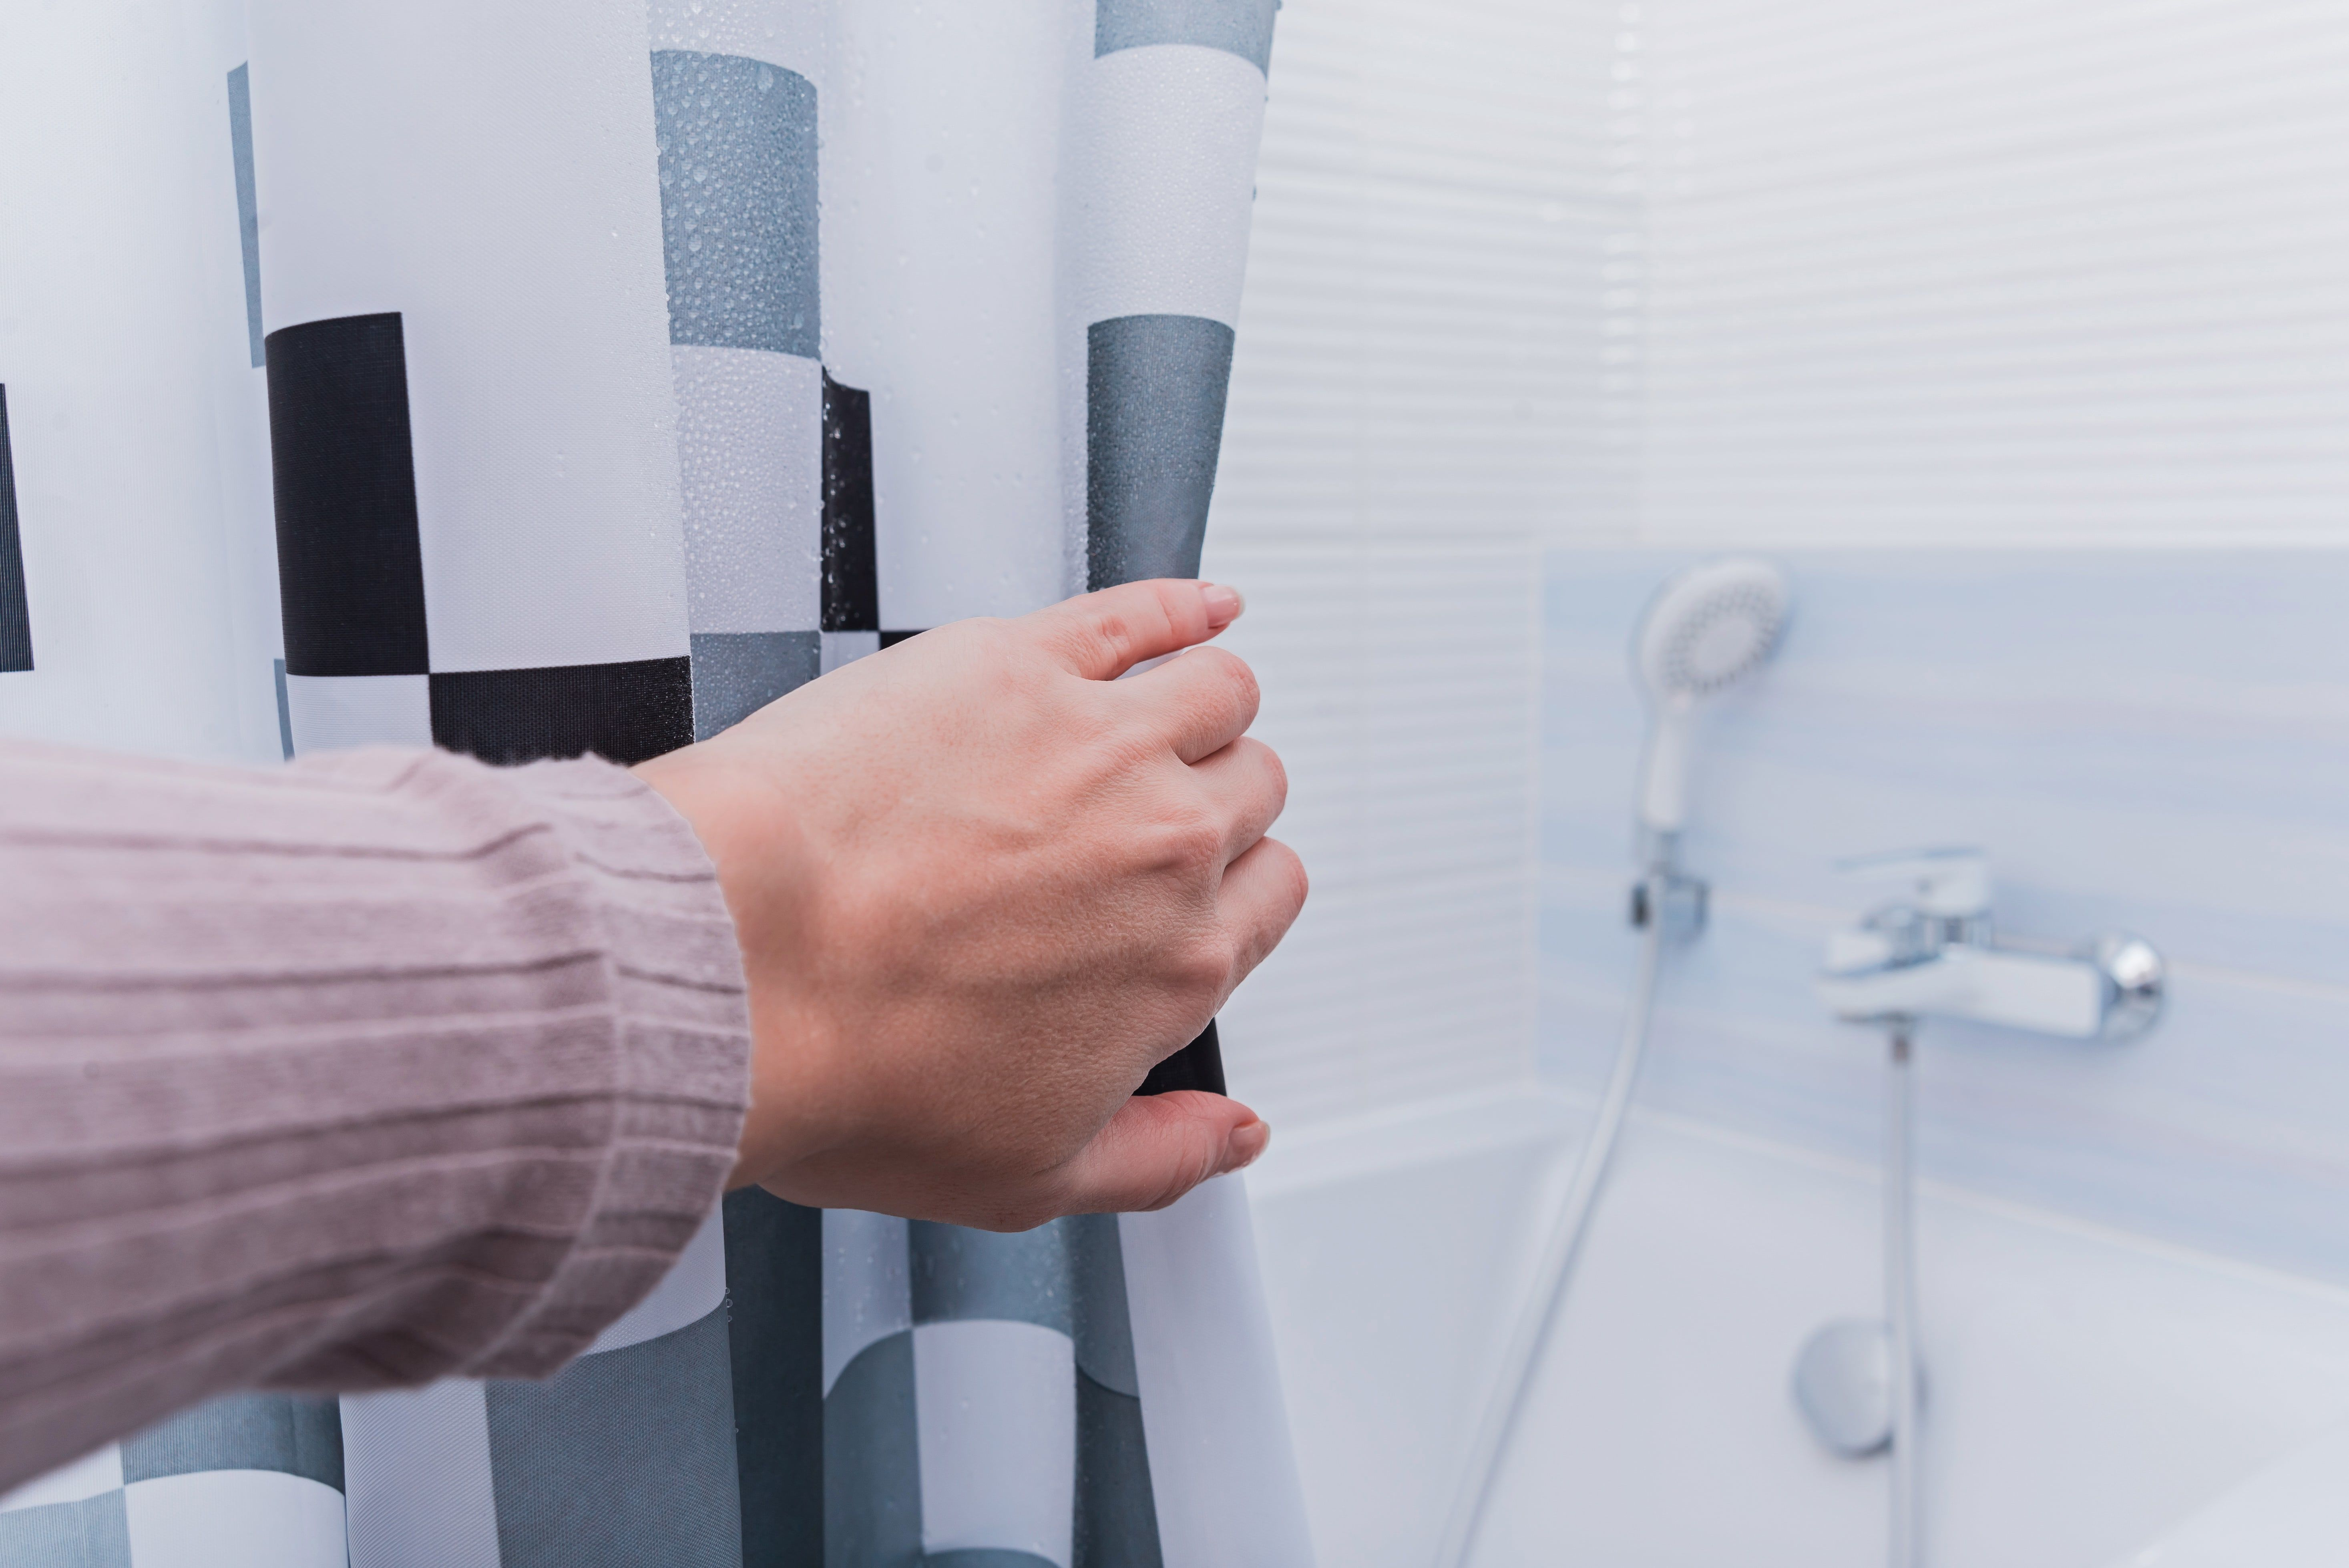 A woman is holding a shower curtain